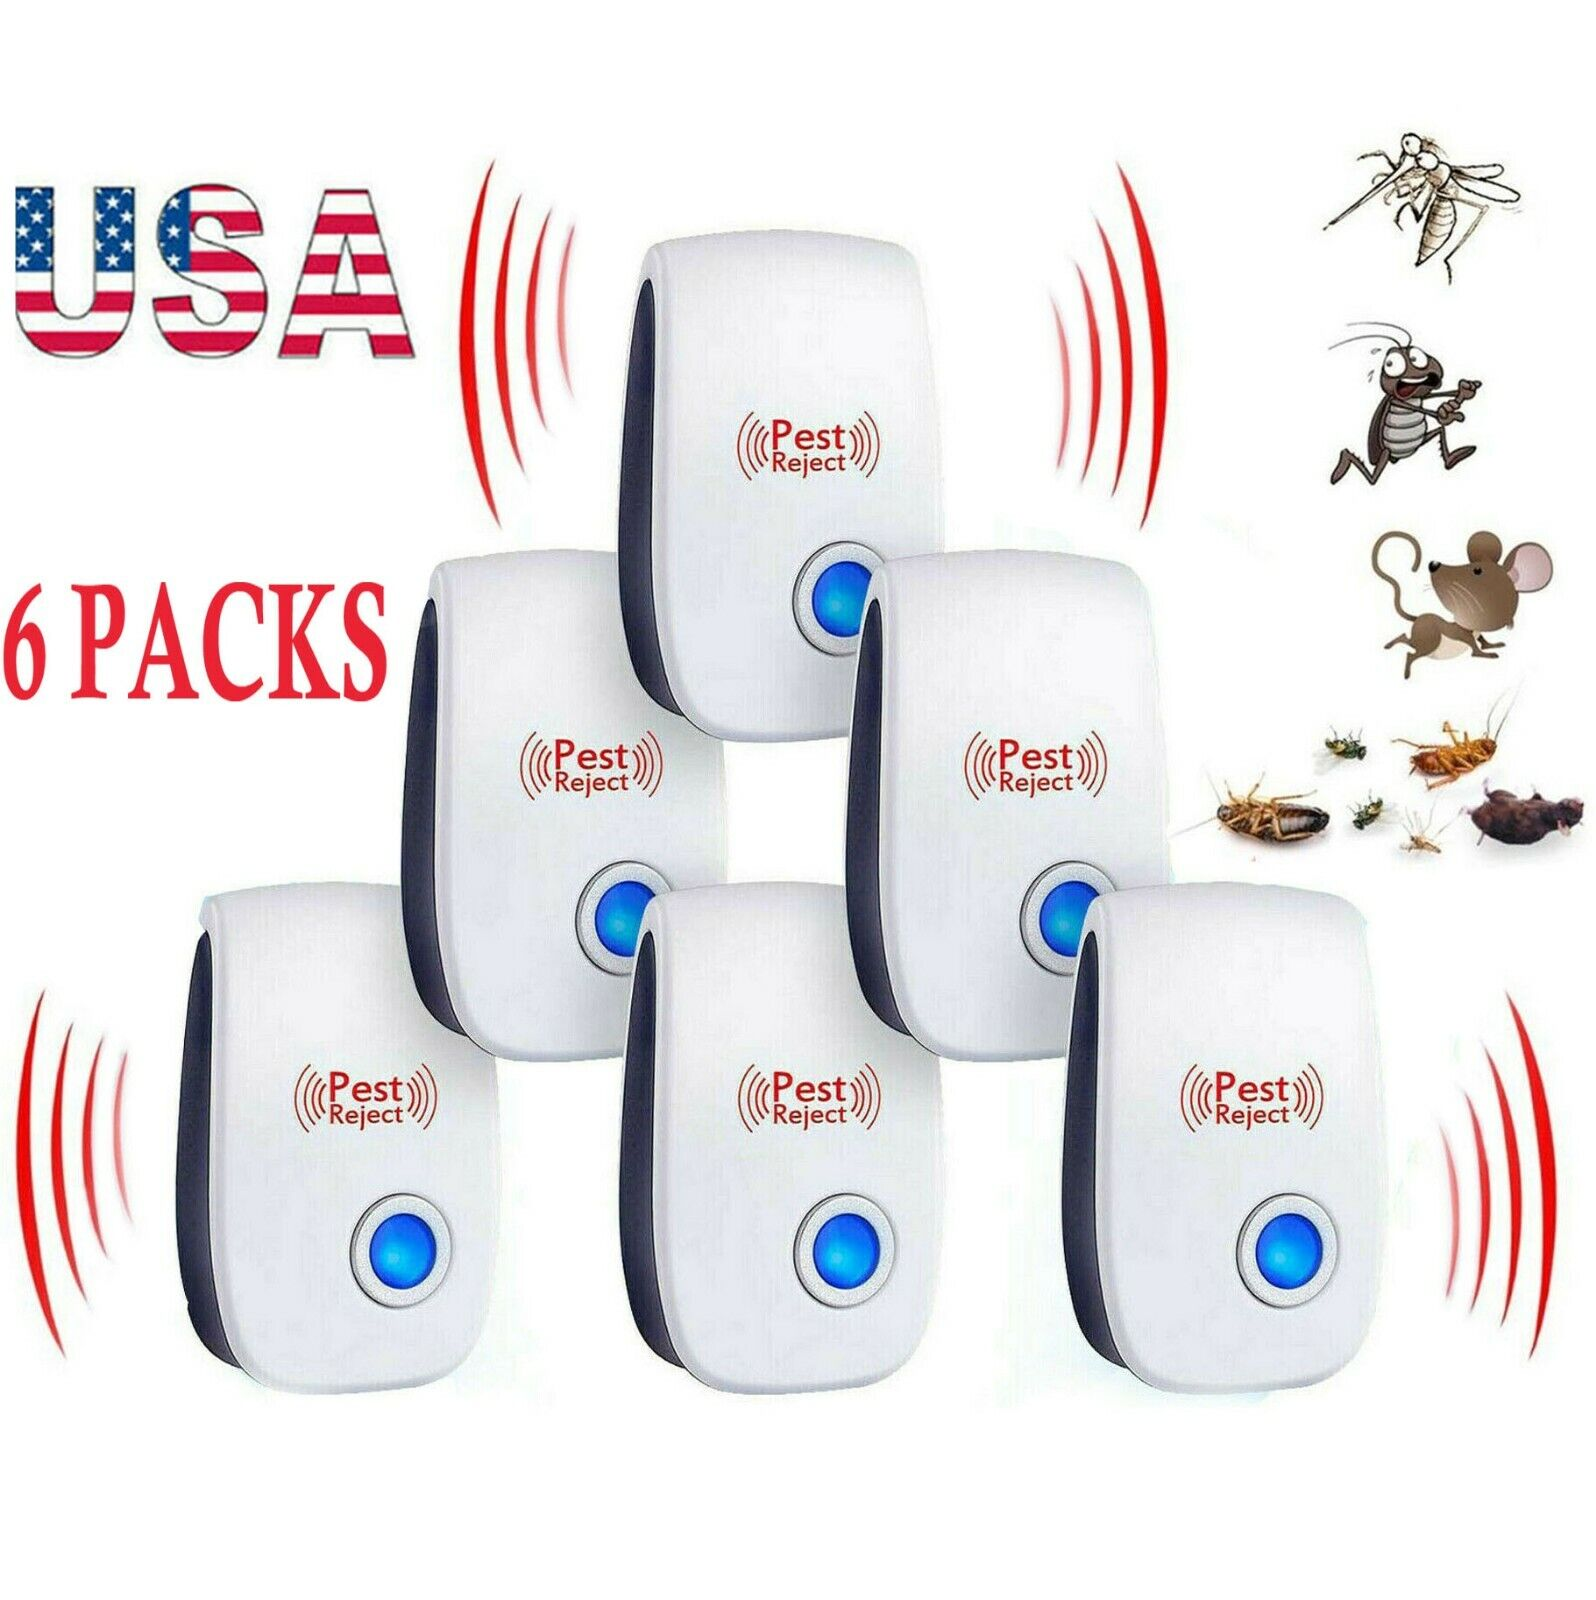 USA 6 PACK Ultrasonic Pest Repeller Reject Mice Insect Mosquito Cockroach Killer Home & Garden